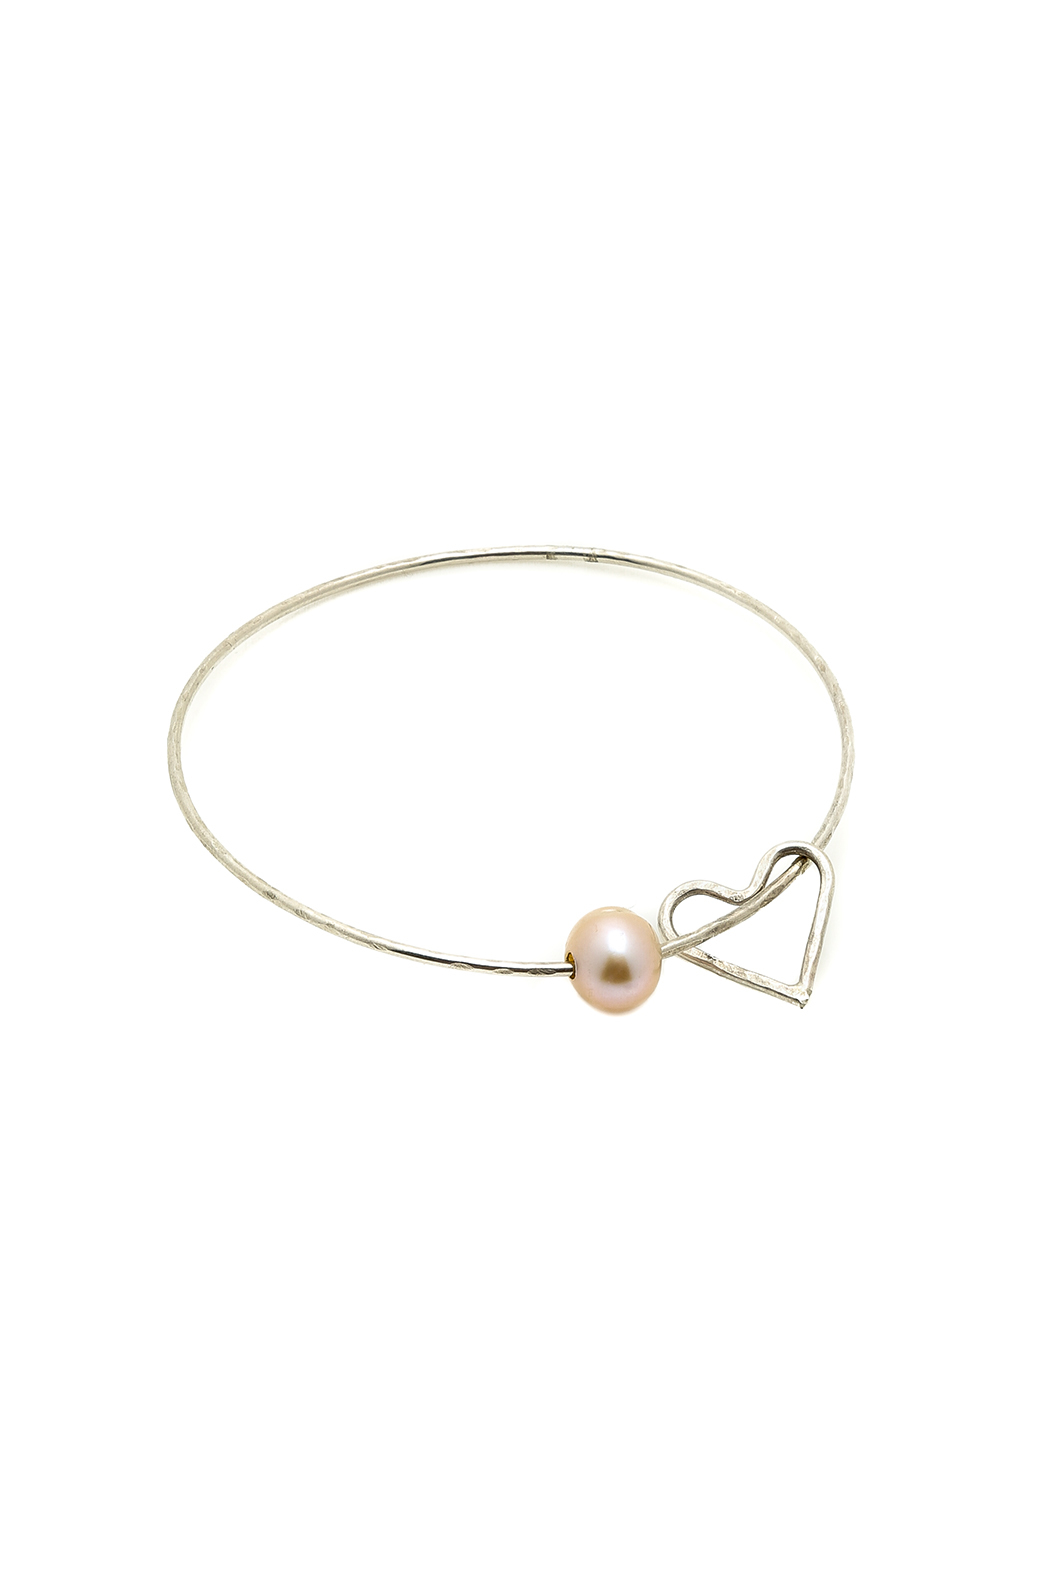 Hurricane Ltd. Maui Bangle Pearl Heart - Main Image